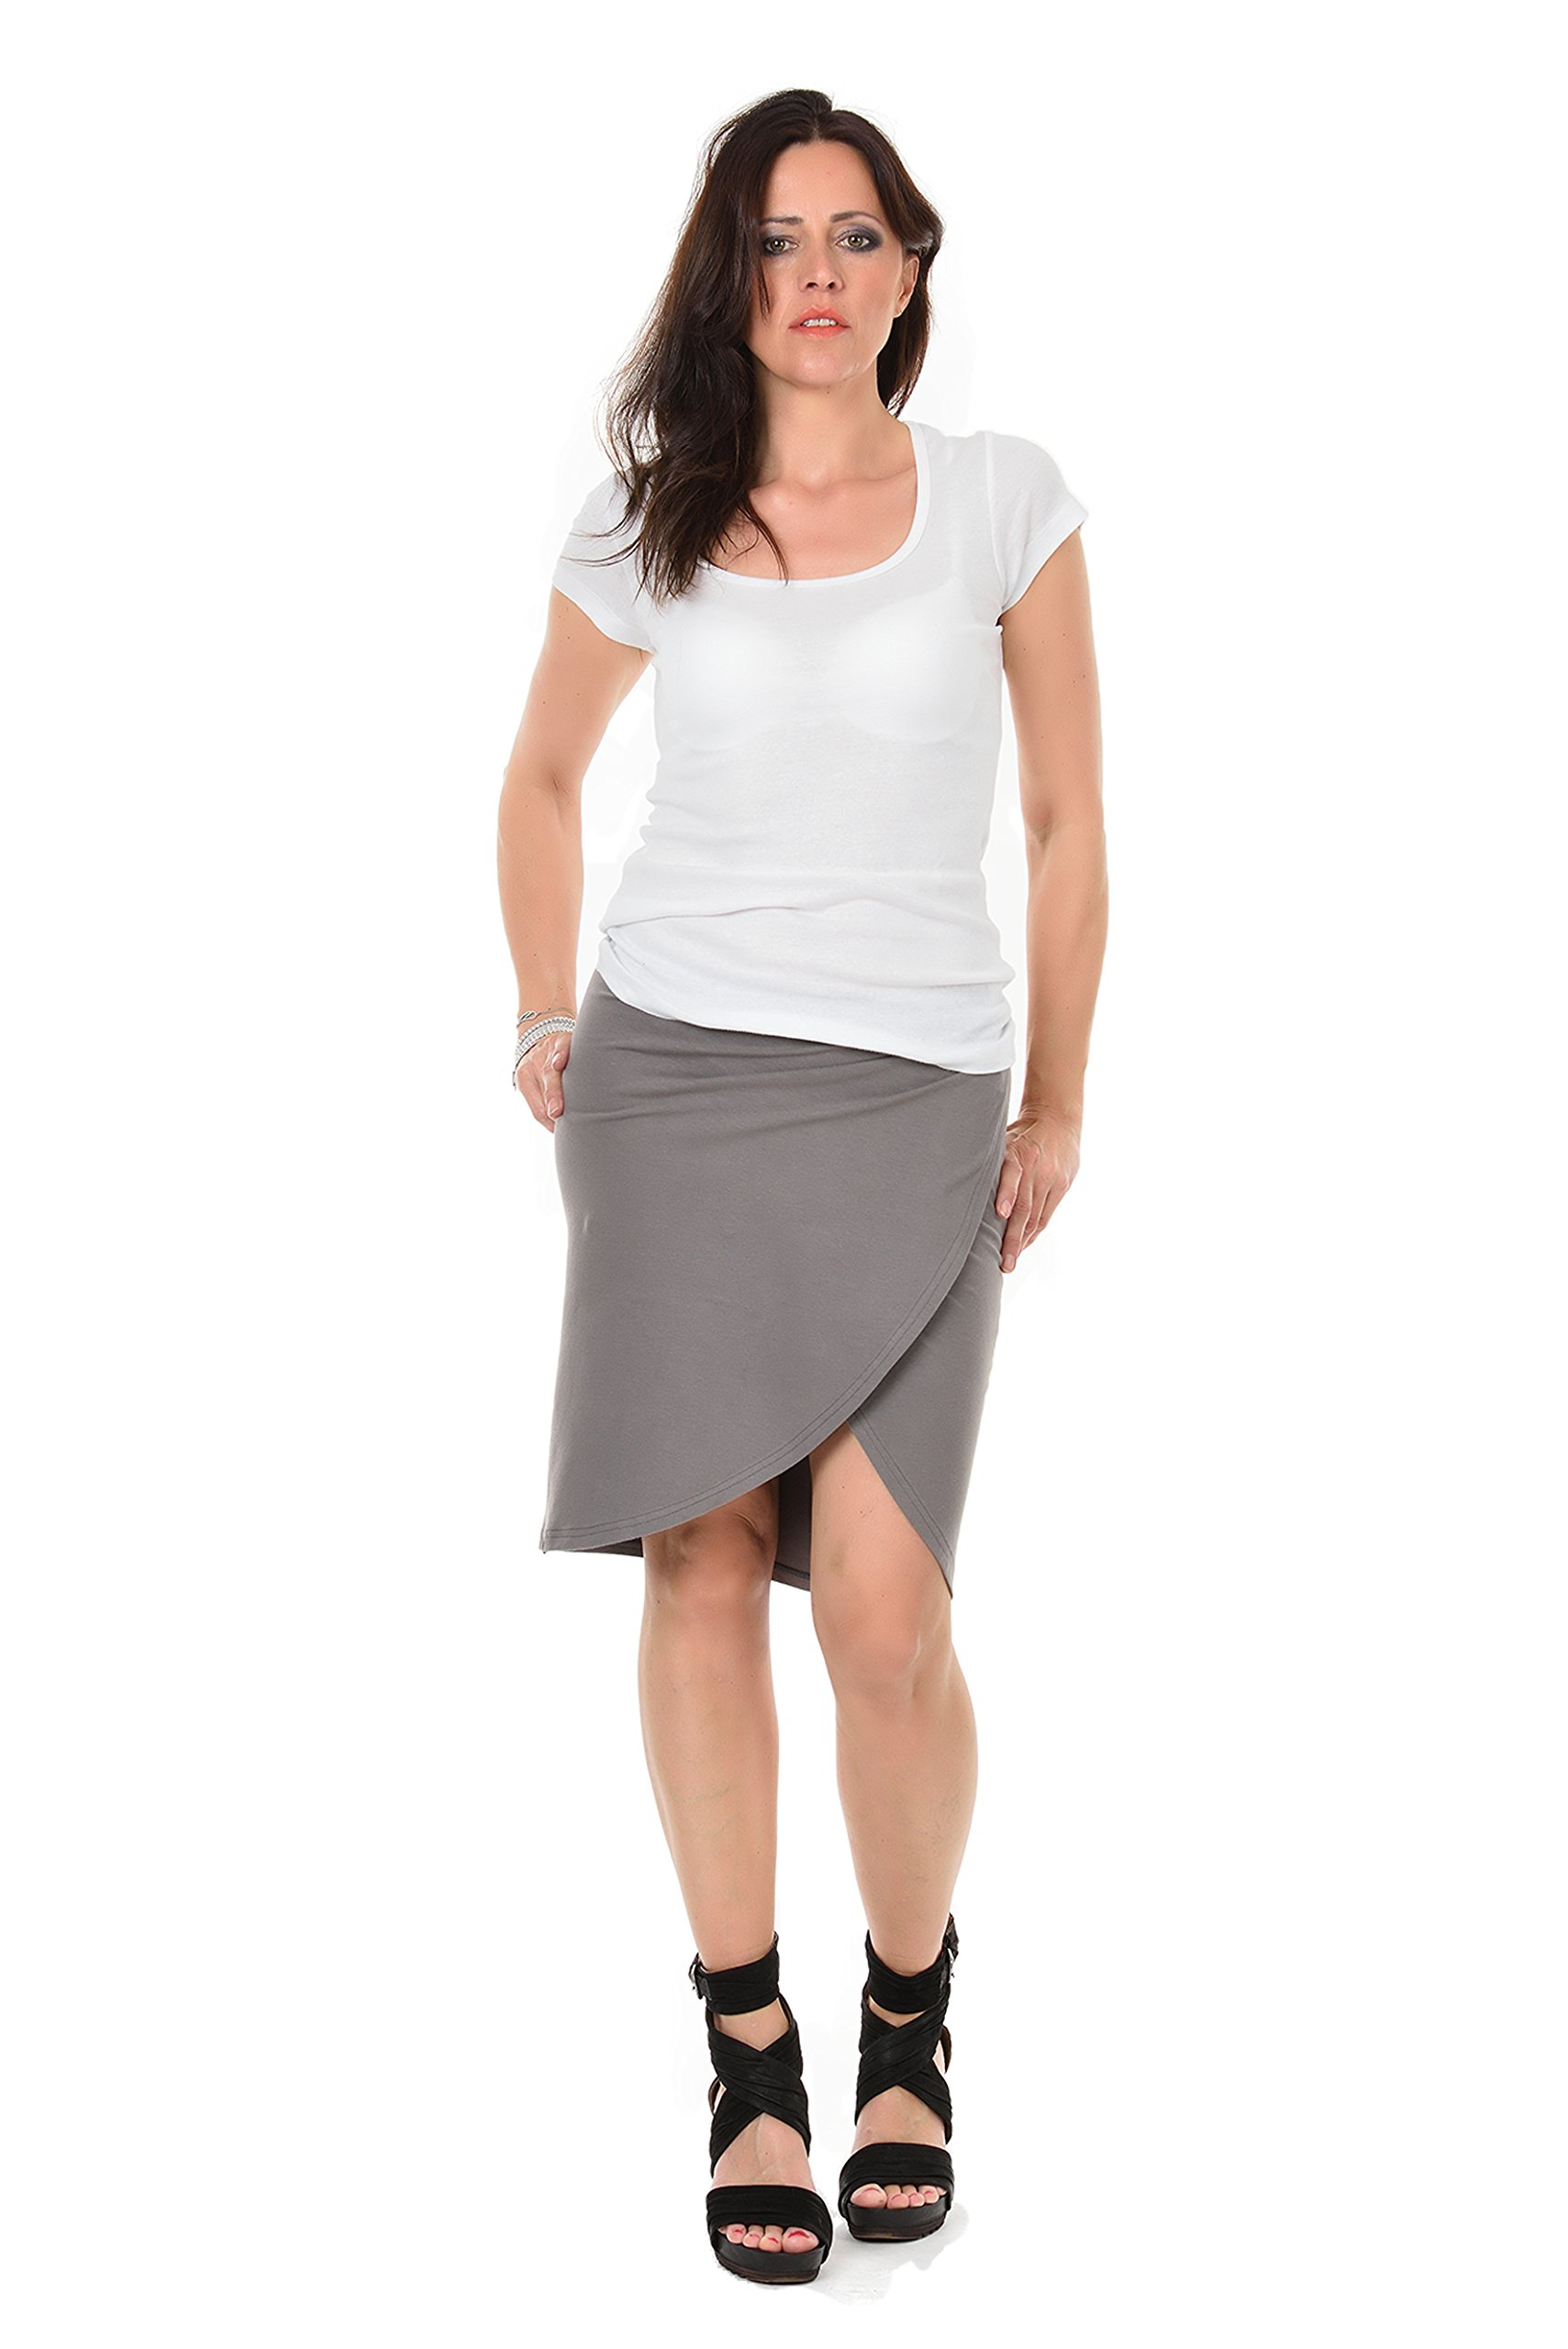 Summer Skirt Wrap Style Knee-Long designed by 3Elfen, grey L woman cloth